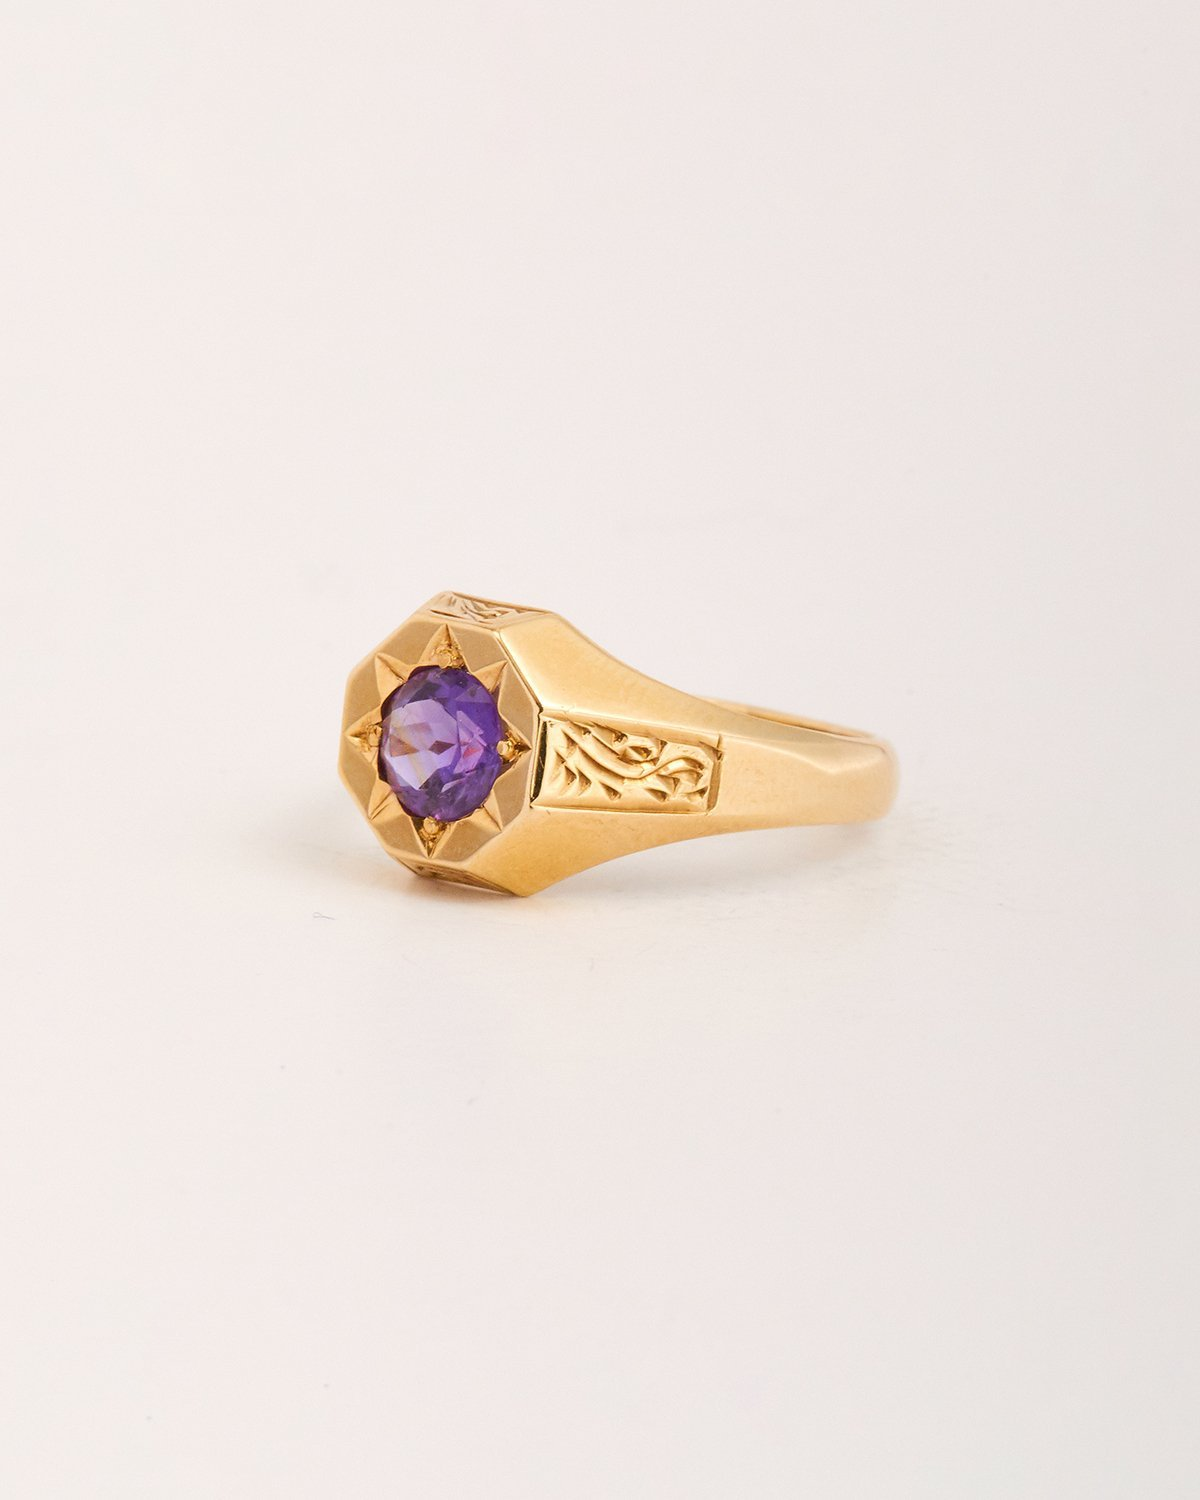 Image of Jean Exclusive Vintage 9ct Gold Amethyst Signet Ring